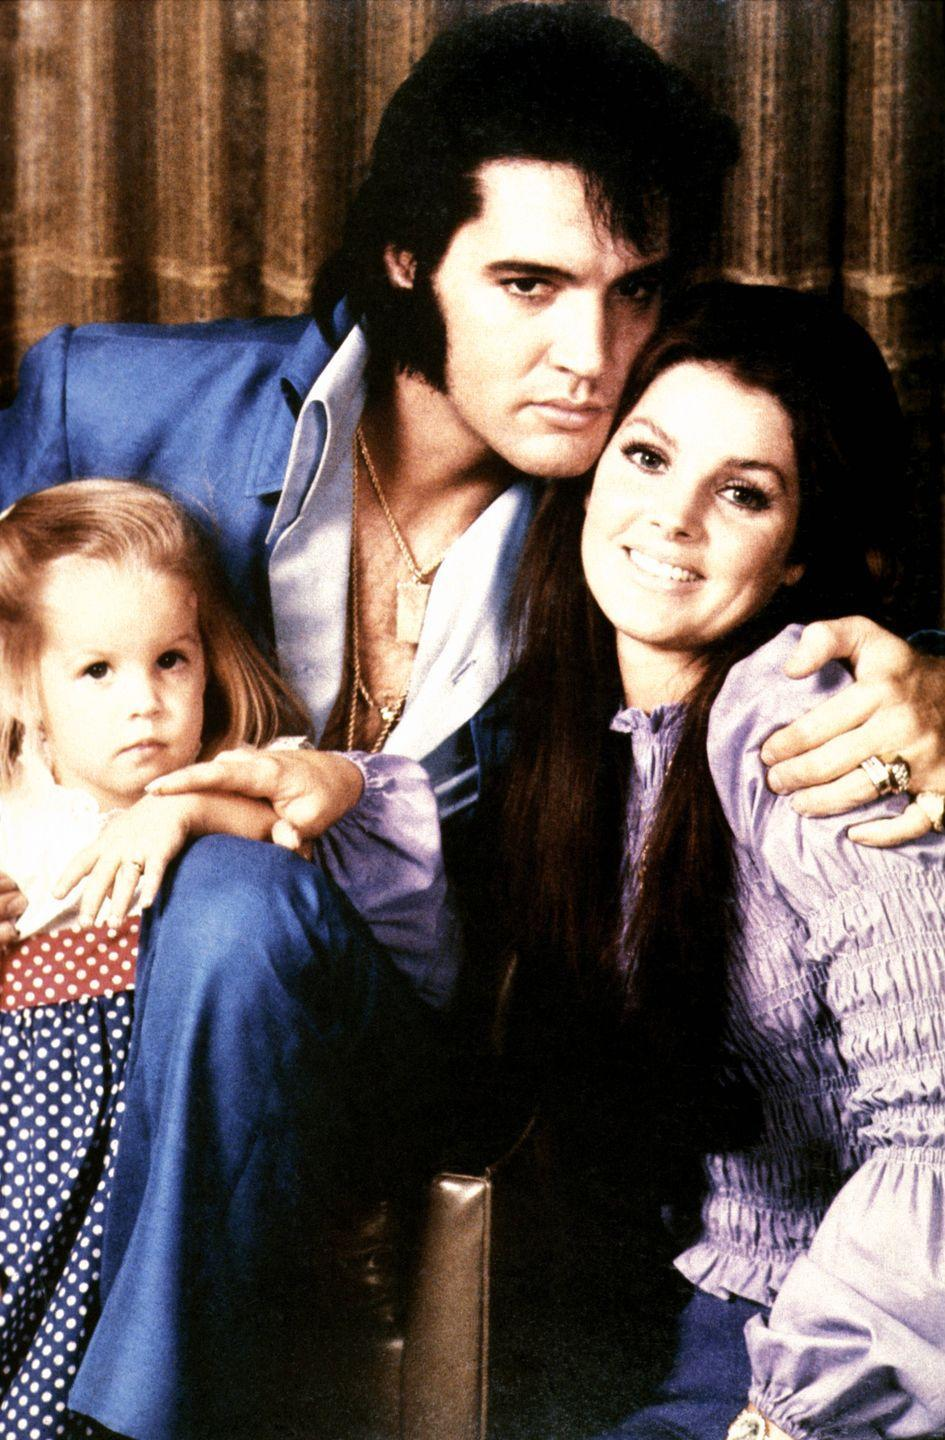 <p>Elvis and Priscilla were granted shared custody of their 4-year-old daughter following their divorce. After they split, Priscilla moved to Los Angeles, while Elvis's primary residence remained Graceland. </p>